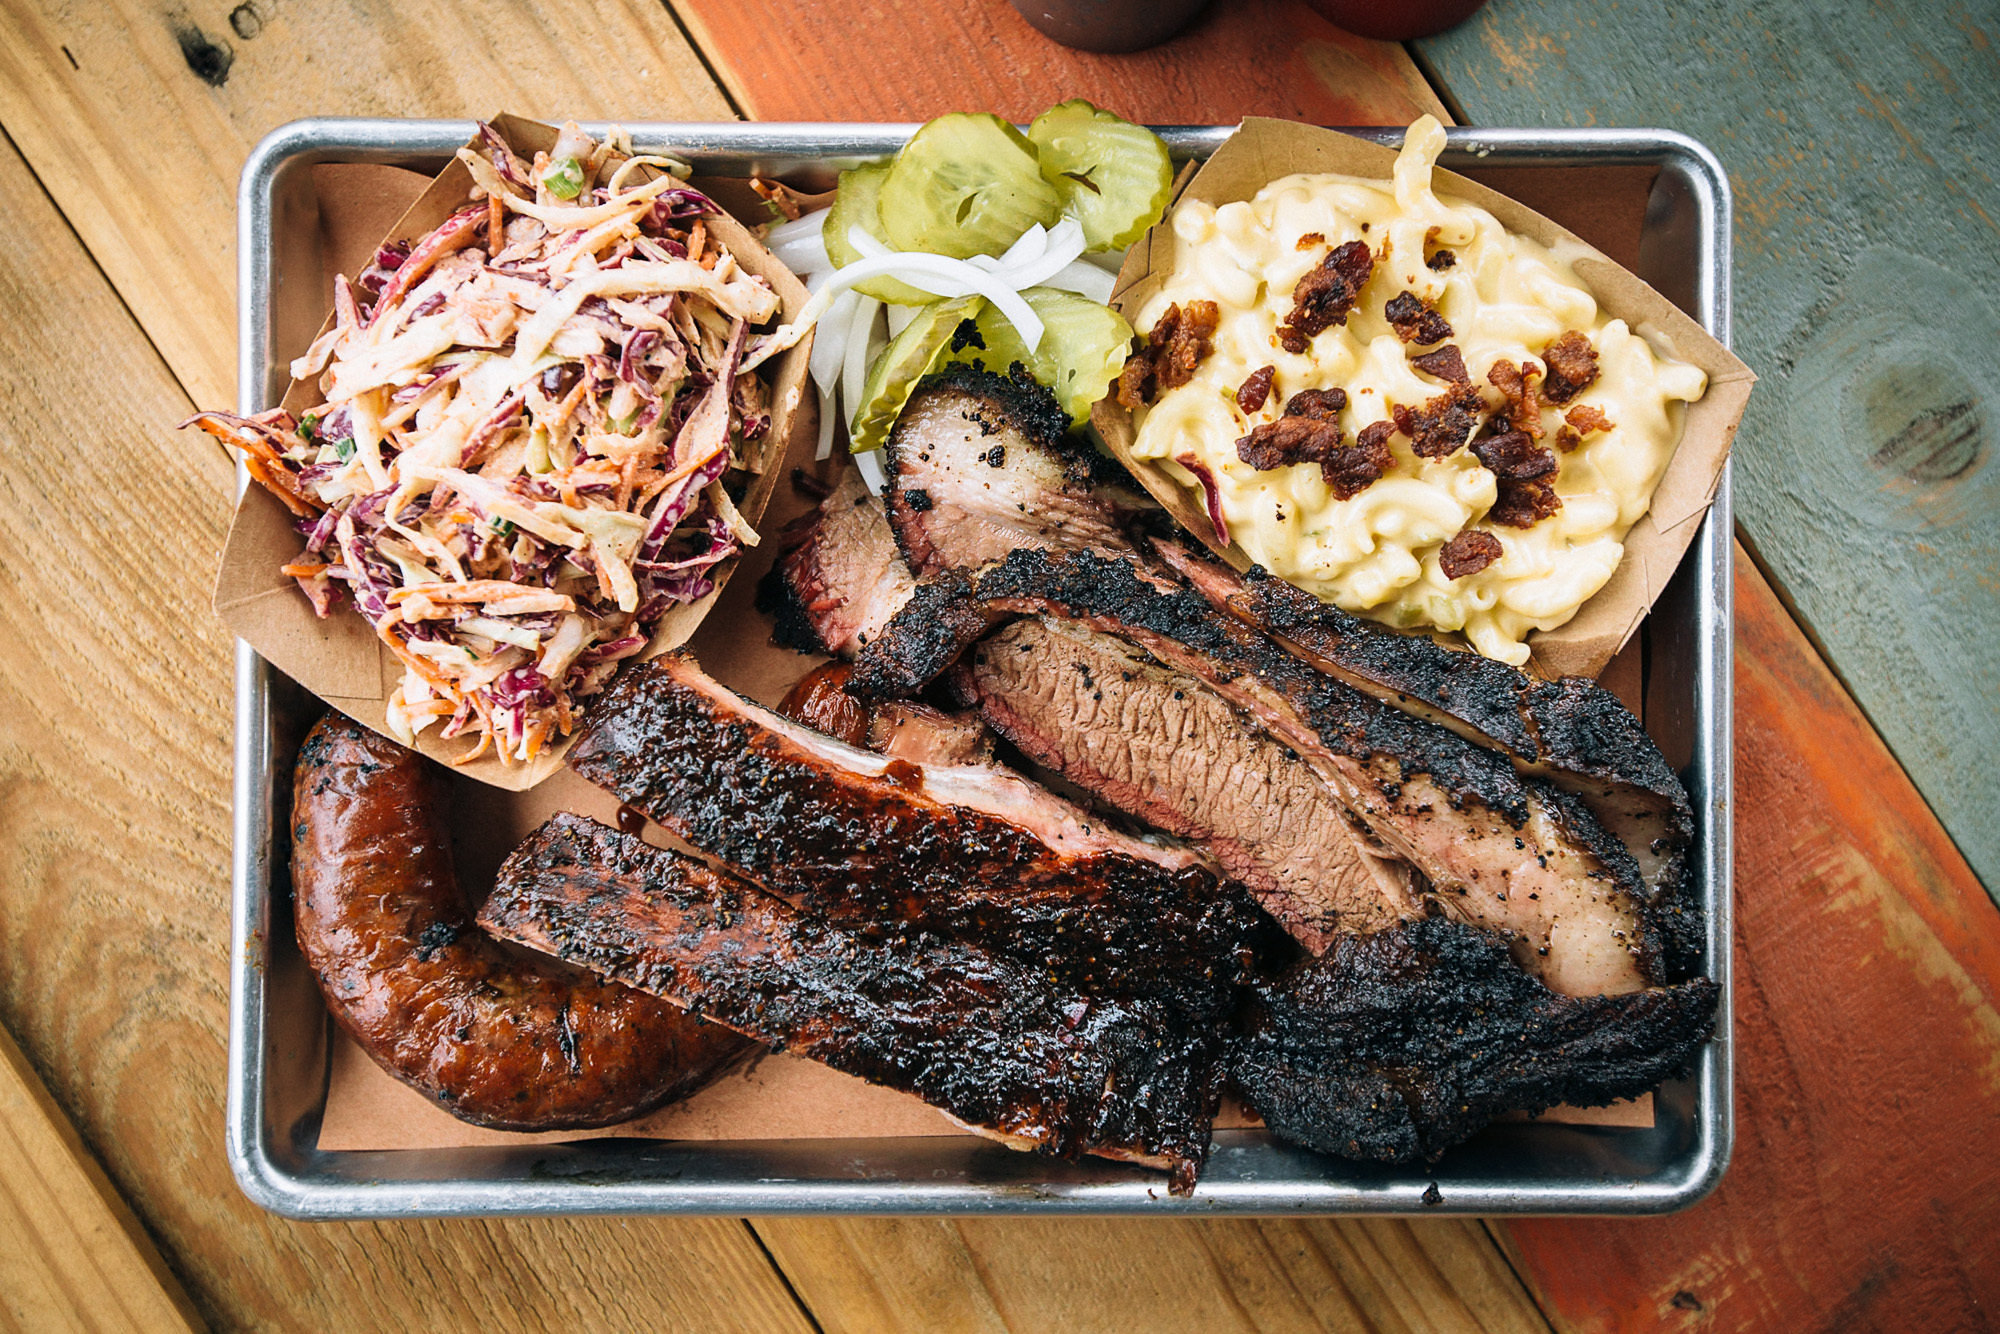 A picturesque platter of Pecan Lodge meats